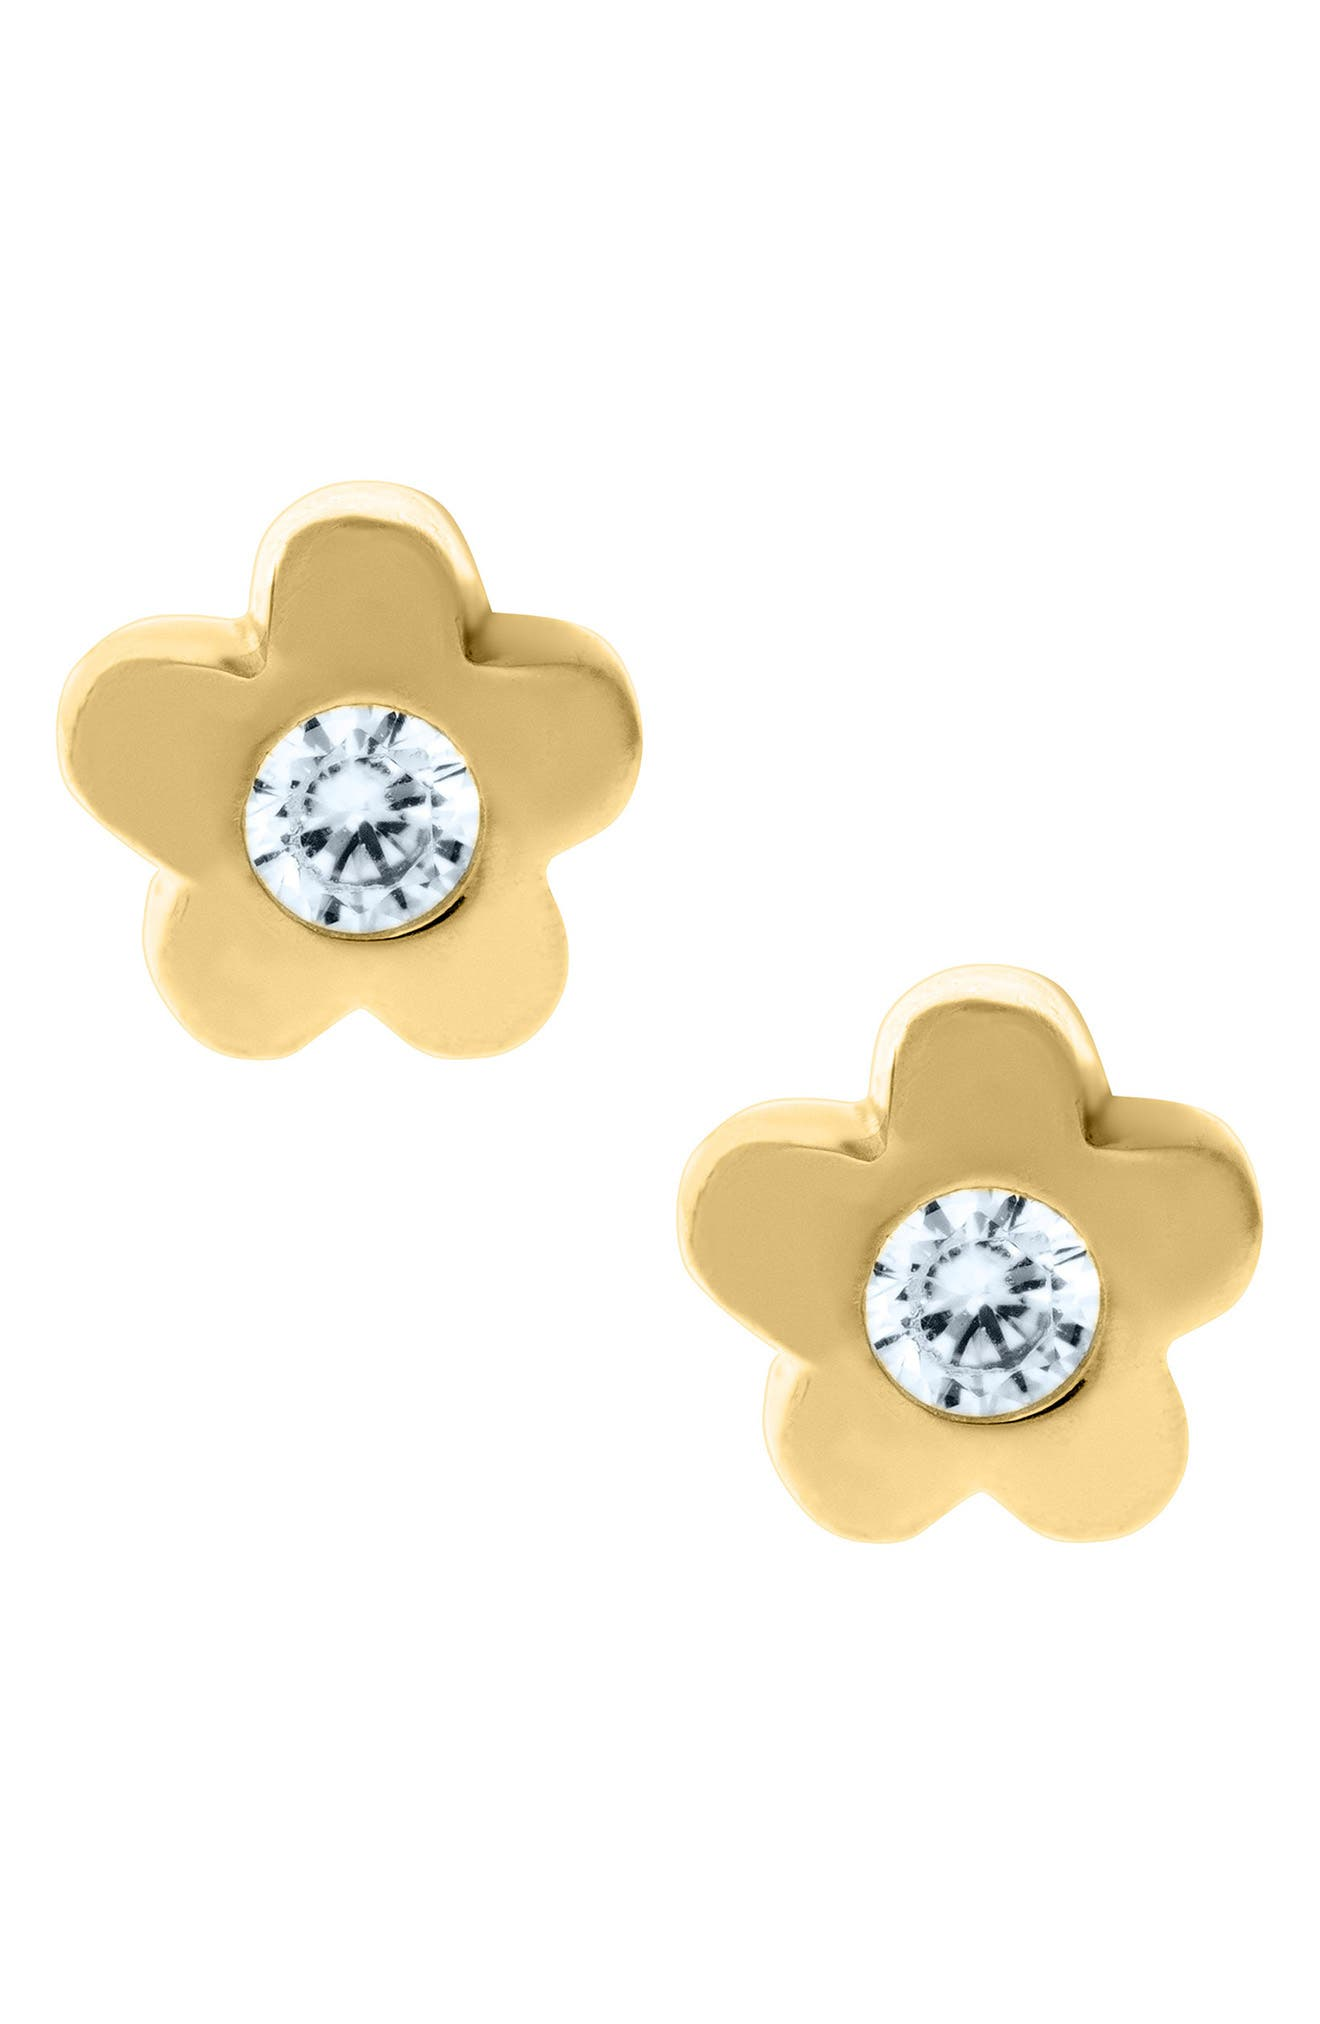 14k Gold & Cubic Zirconia Flower Earrings,                             Main thumbnail 1, color,                             GOLD